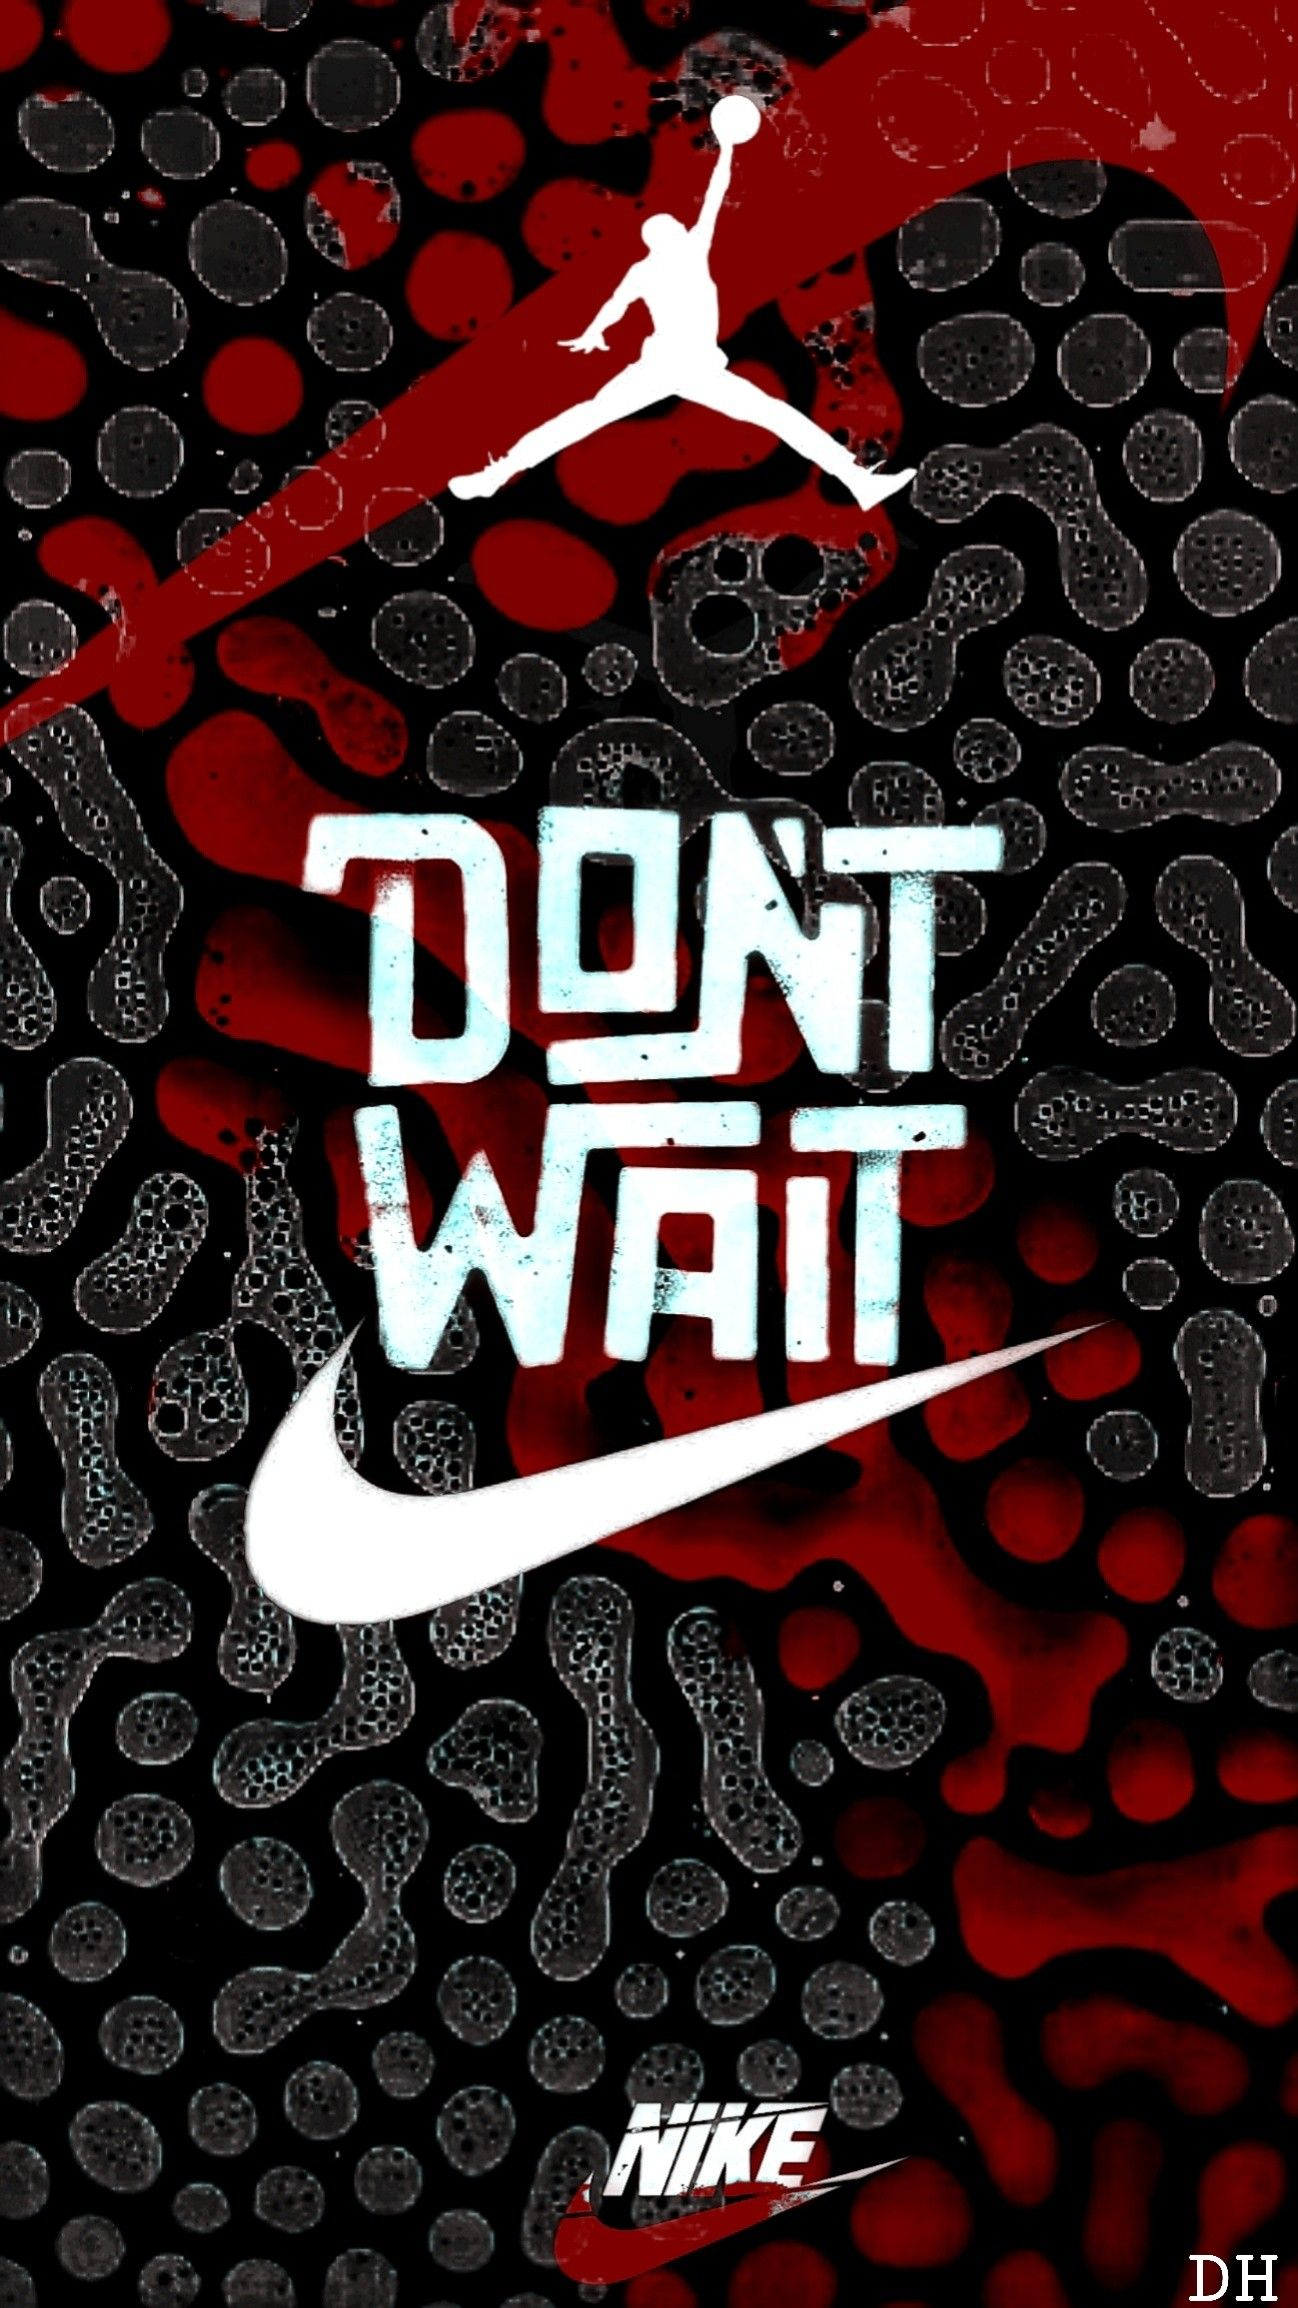 Pin by Hooter983 on Nike wallpaper in 2020